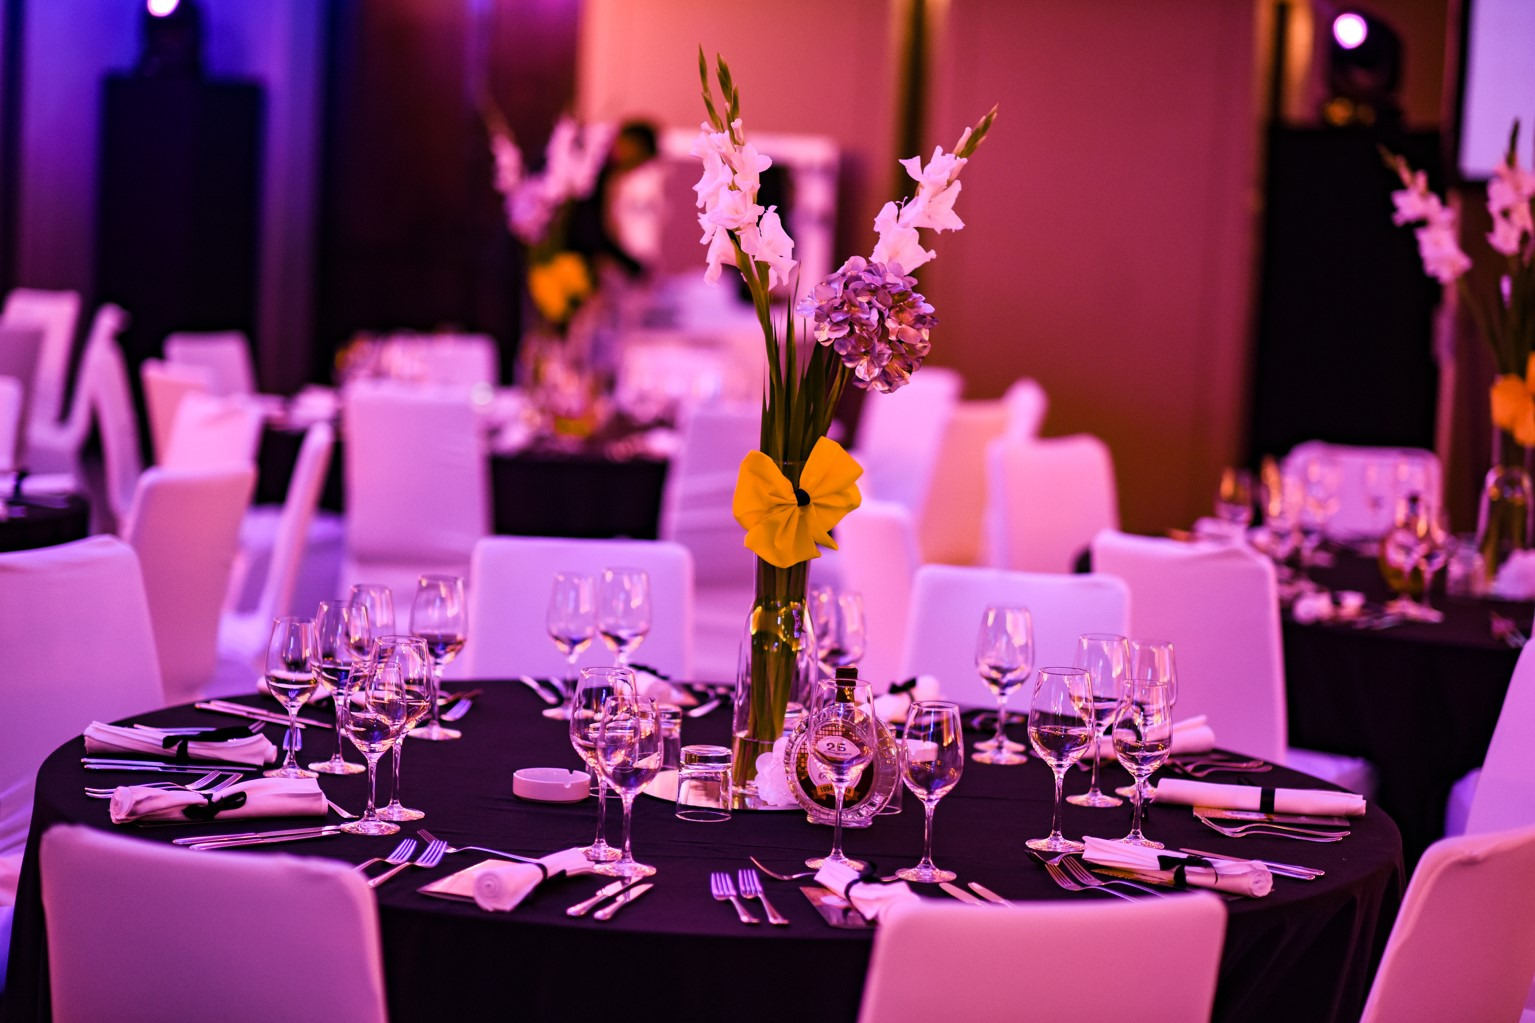 Celebrating 25 years of DIM Trade, organized by Event Planner and Ana Aleksic - venue Crowne Plaza Hotel